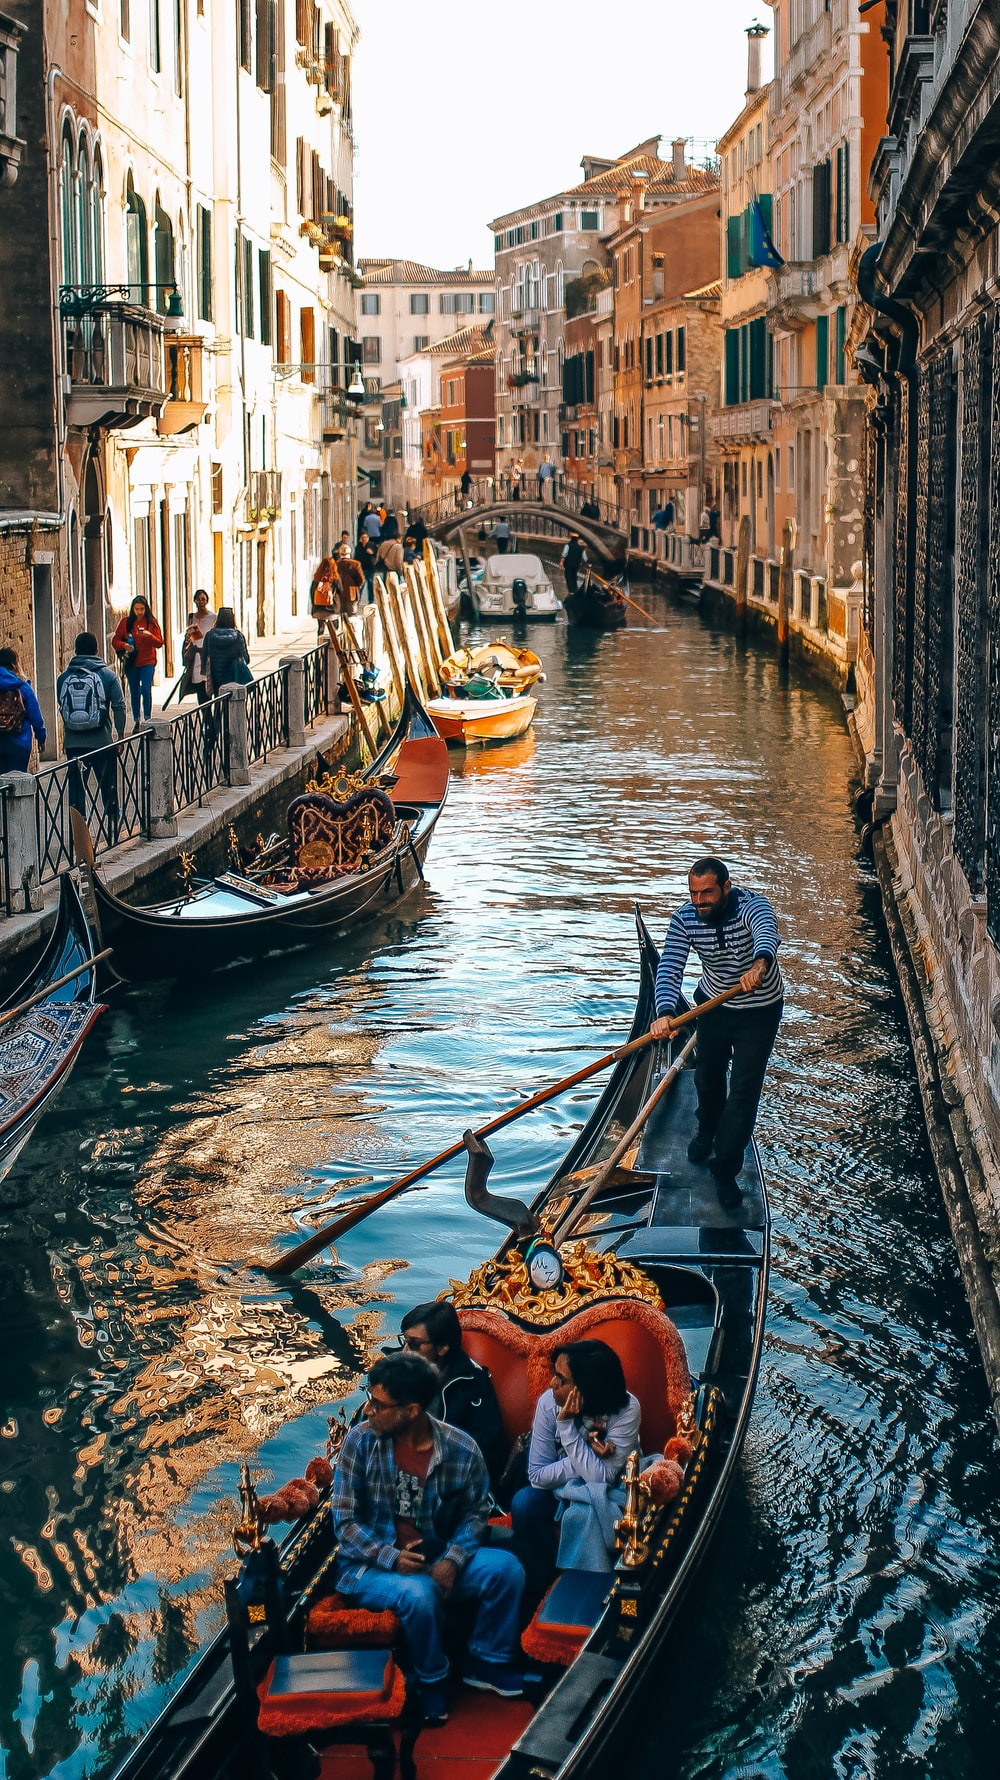 people in boat on Venice Canal during daytime